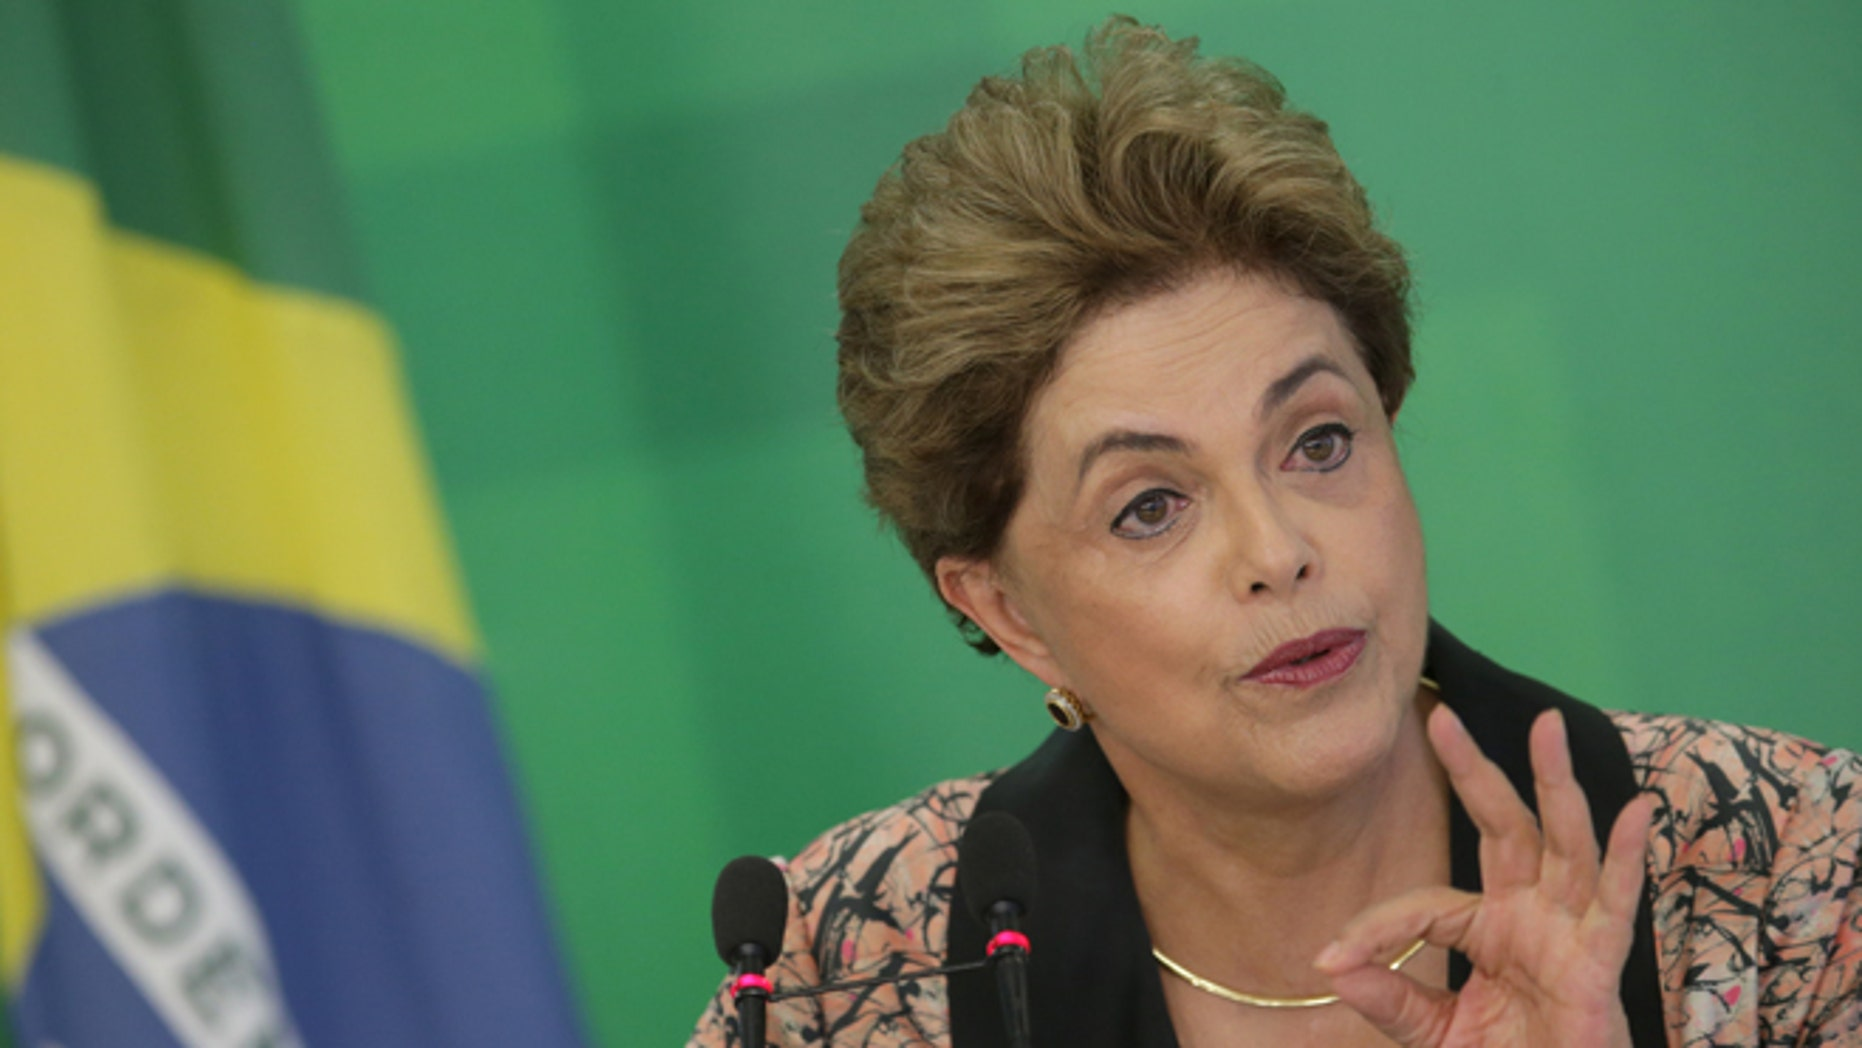 Rousseff during a press conference at the Planalto Presidential Palace in Brasilia, Tuesday, April 19, 2016.